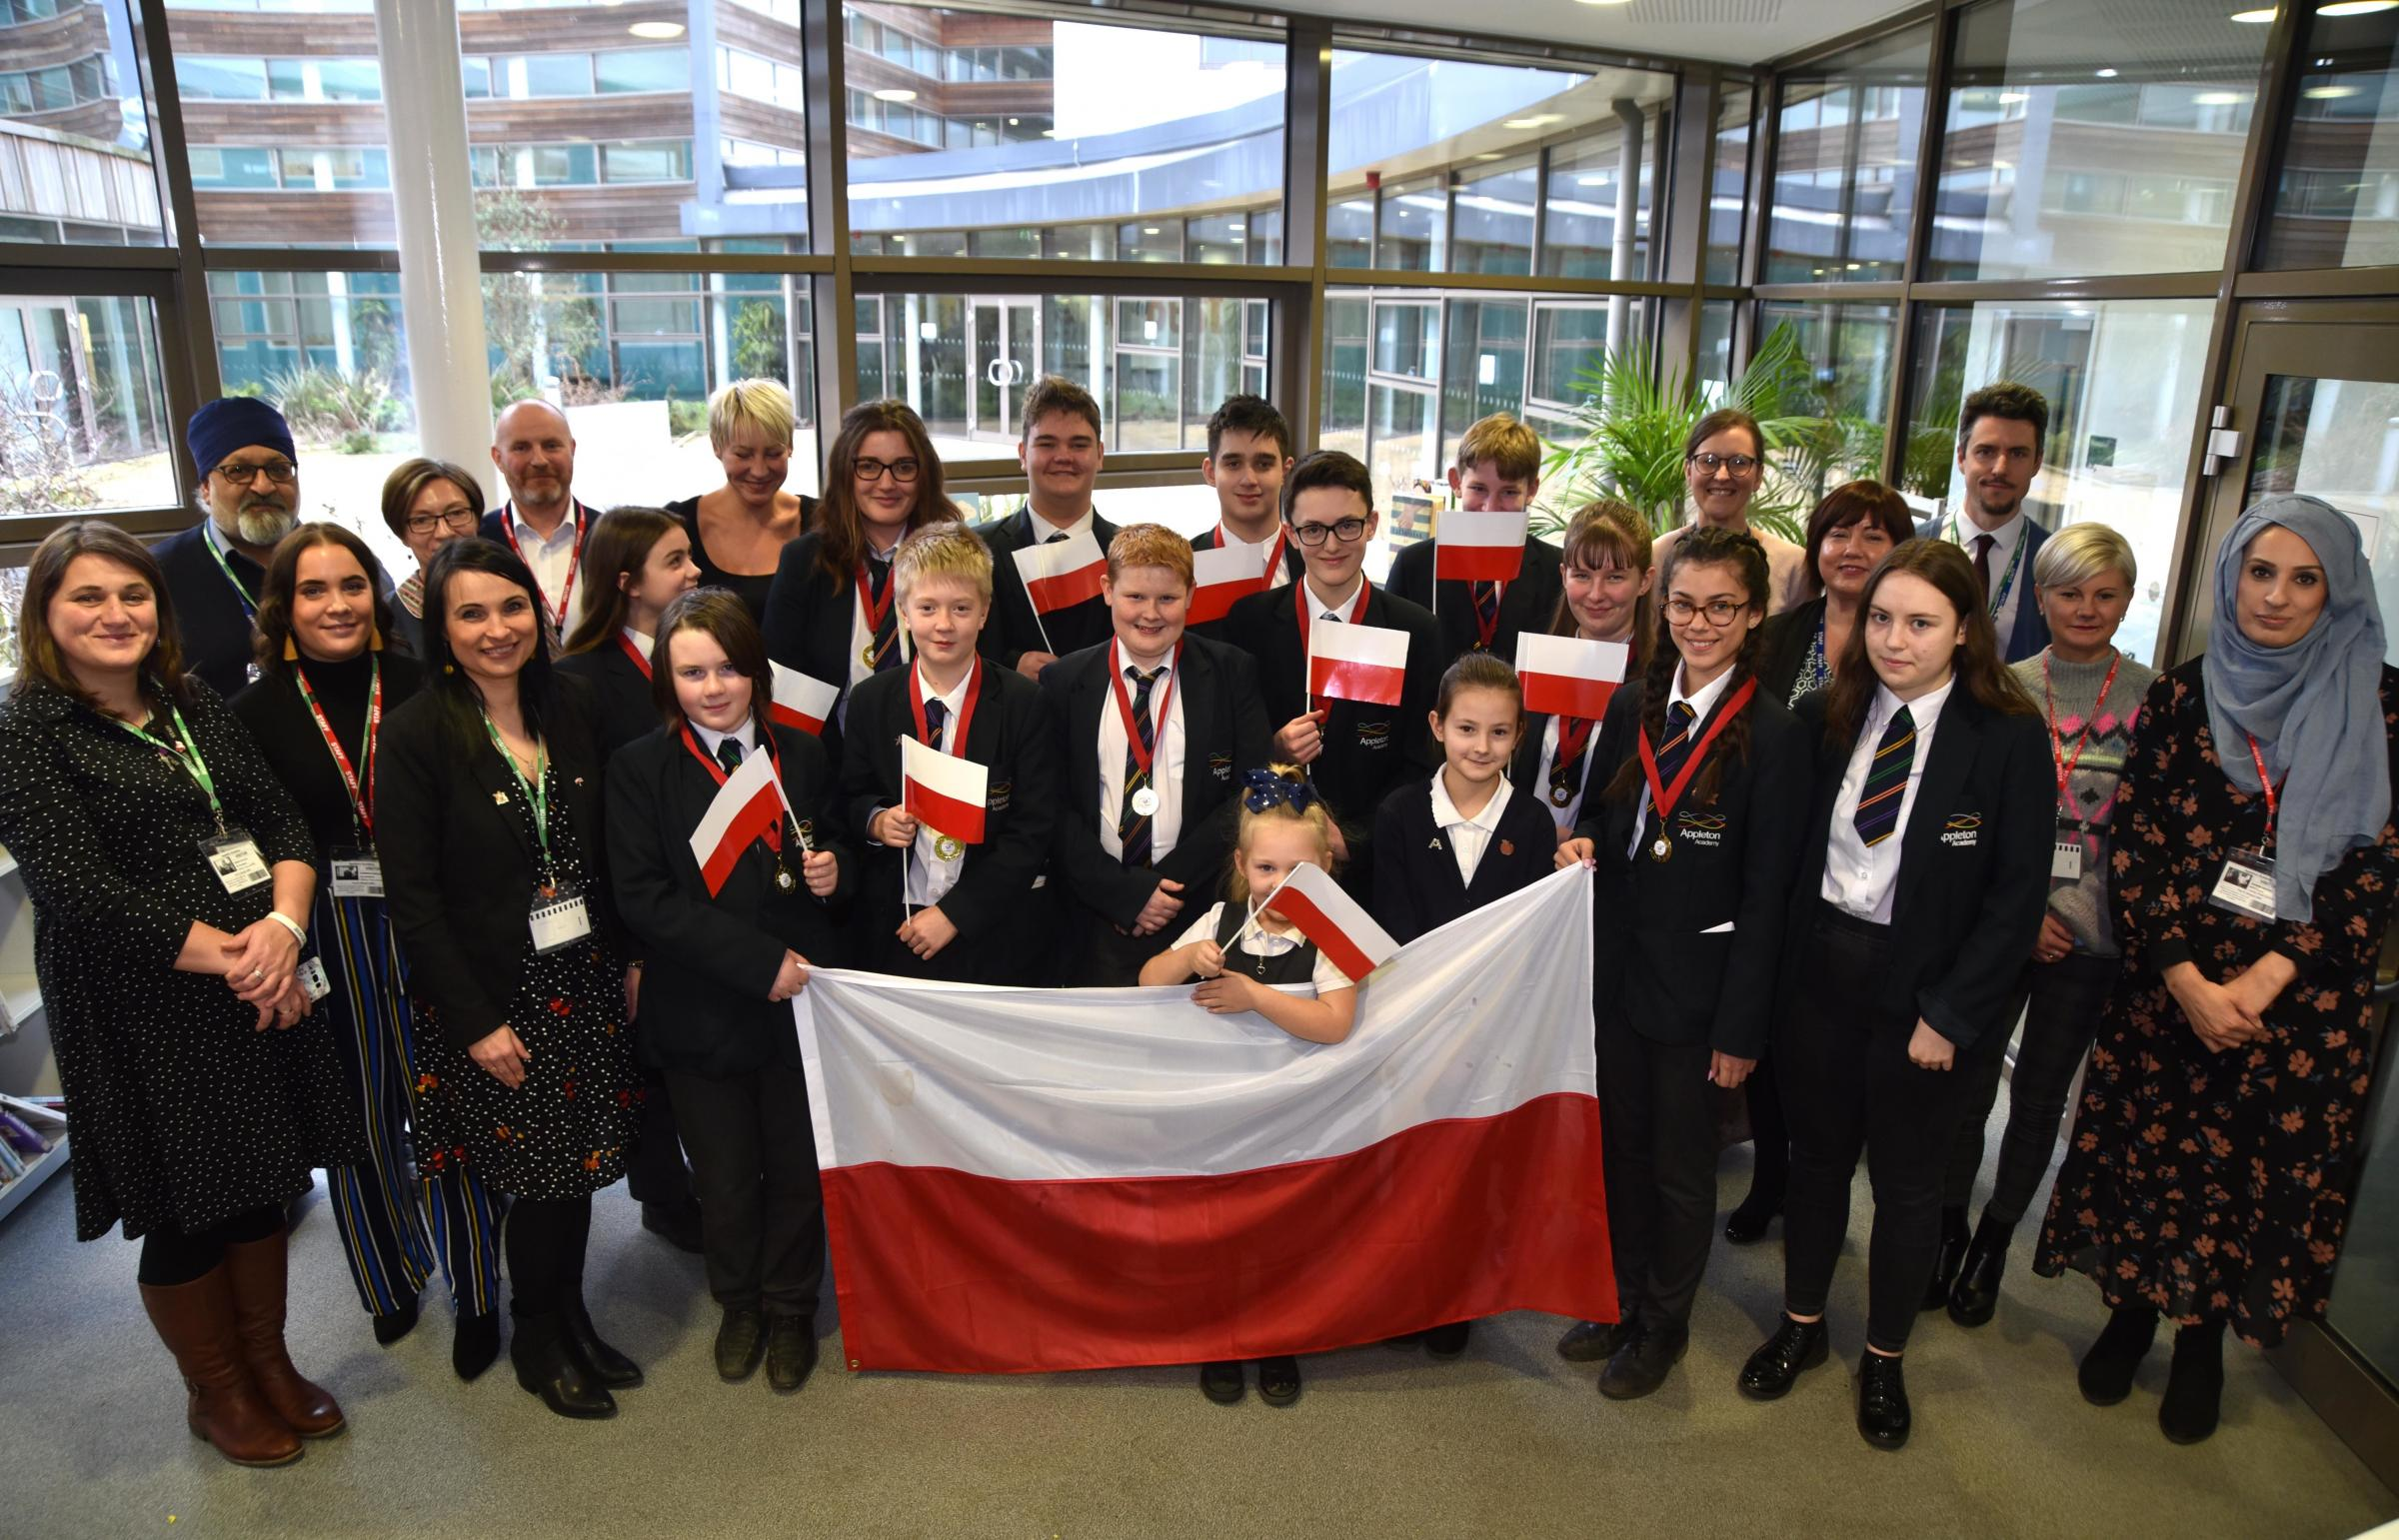 Polish Week at Appleton Academy tackles stereotypes